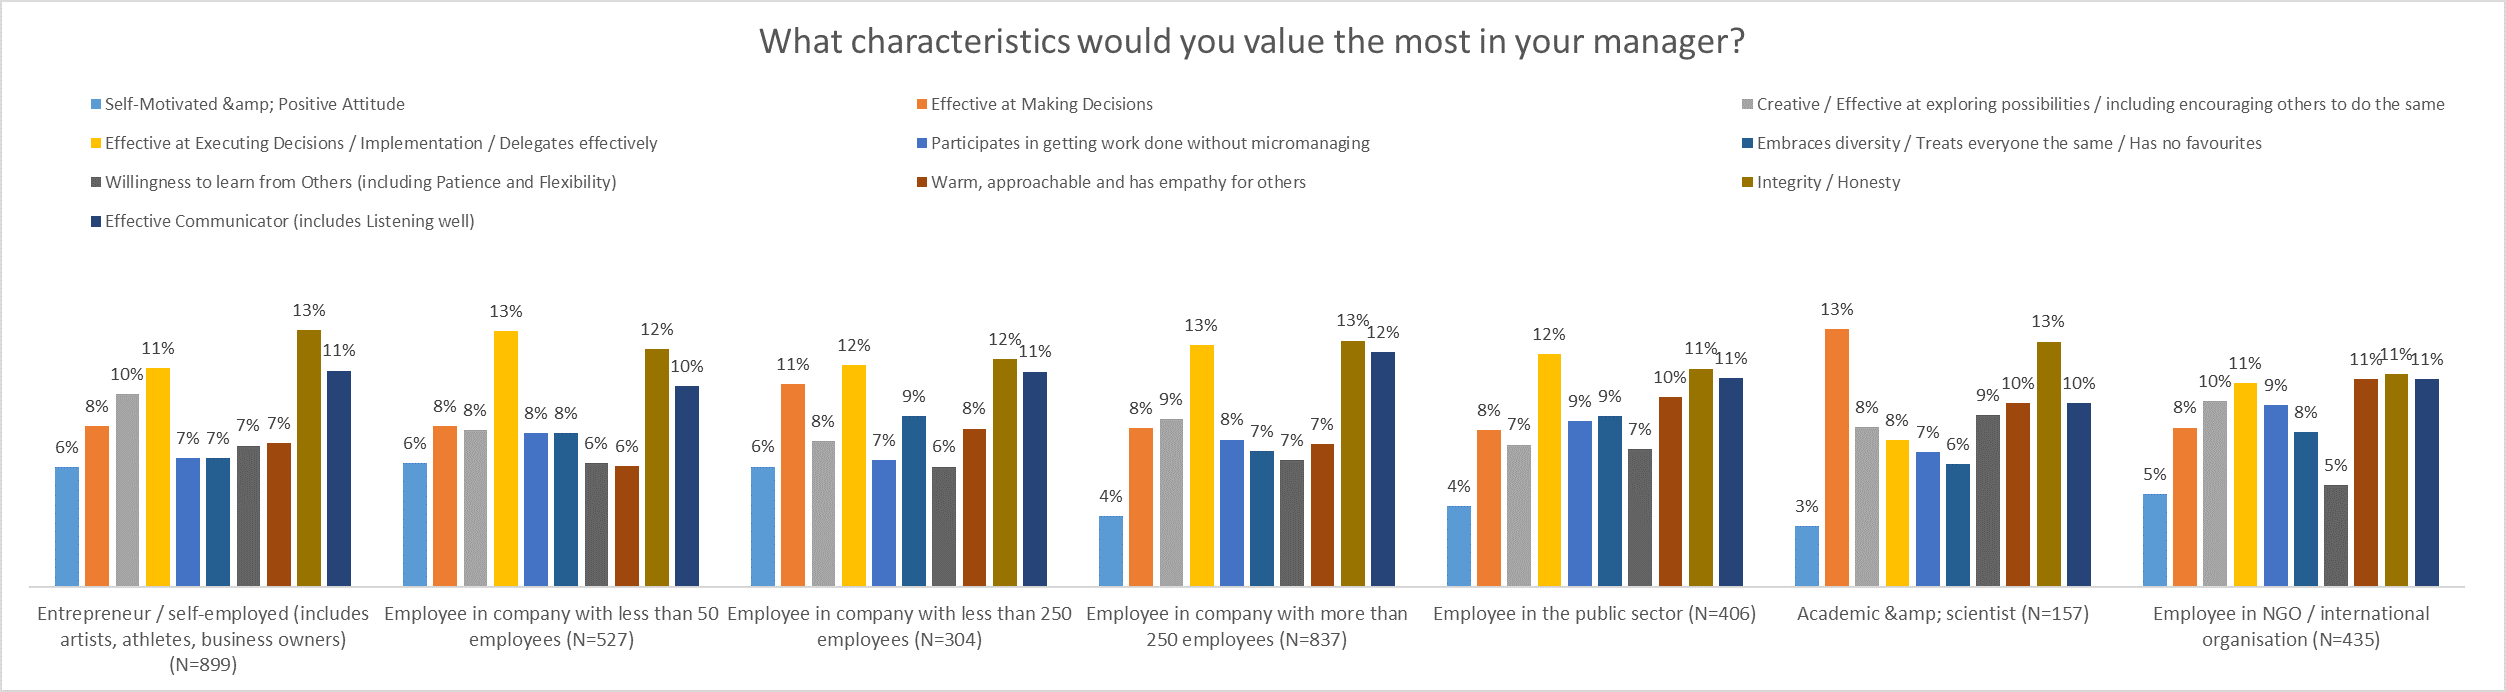 What characteristics would you value most in your manager